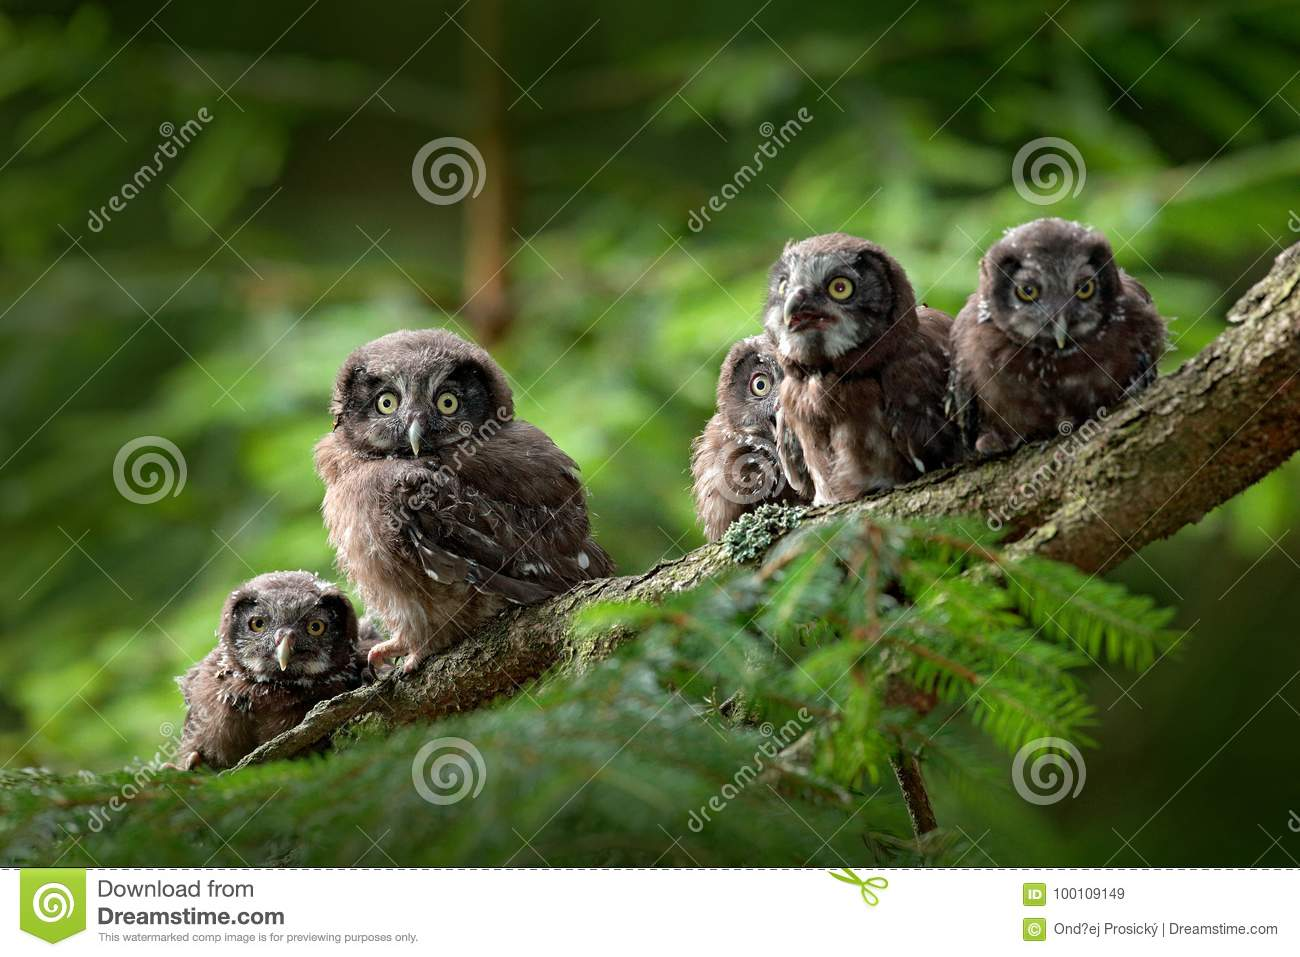 Five young owls. Small bird Boreal owl, Aegolius funereus, sitting on the tree branch in green forest background, young, baby, cub